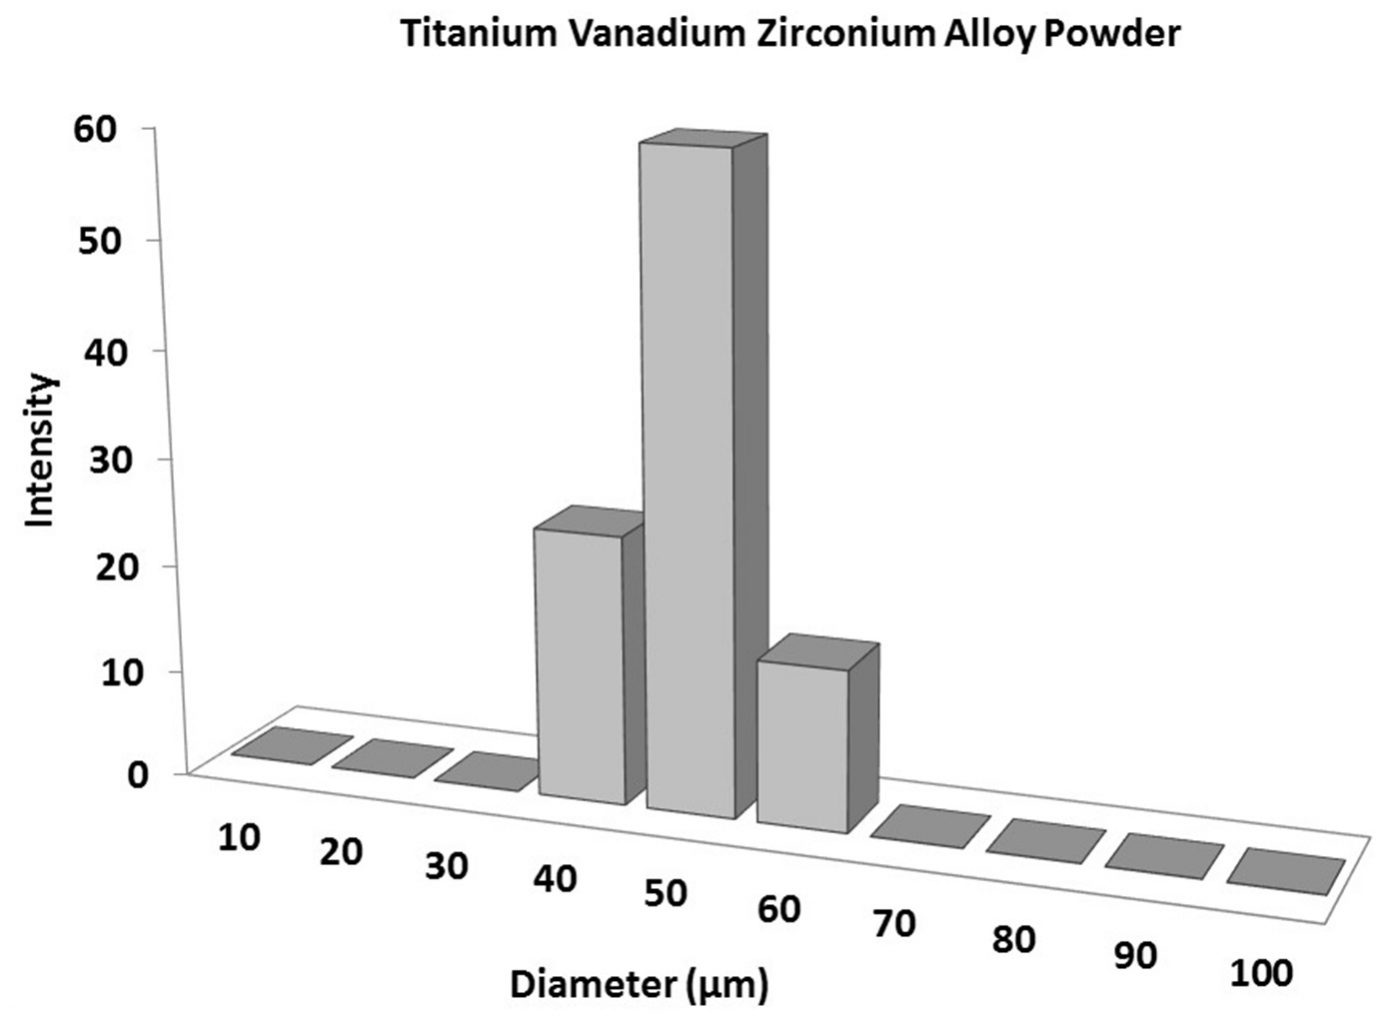 Zirconium Vanadium Titanium Alloy Powder